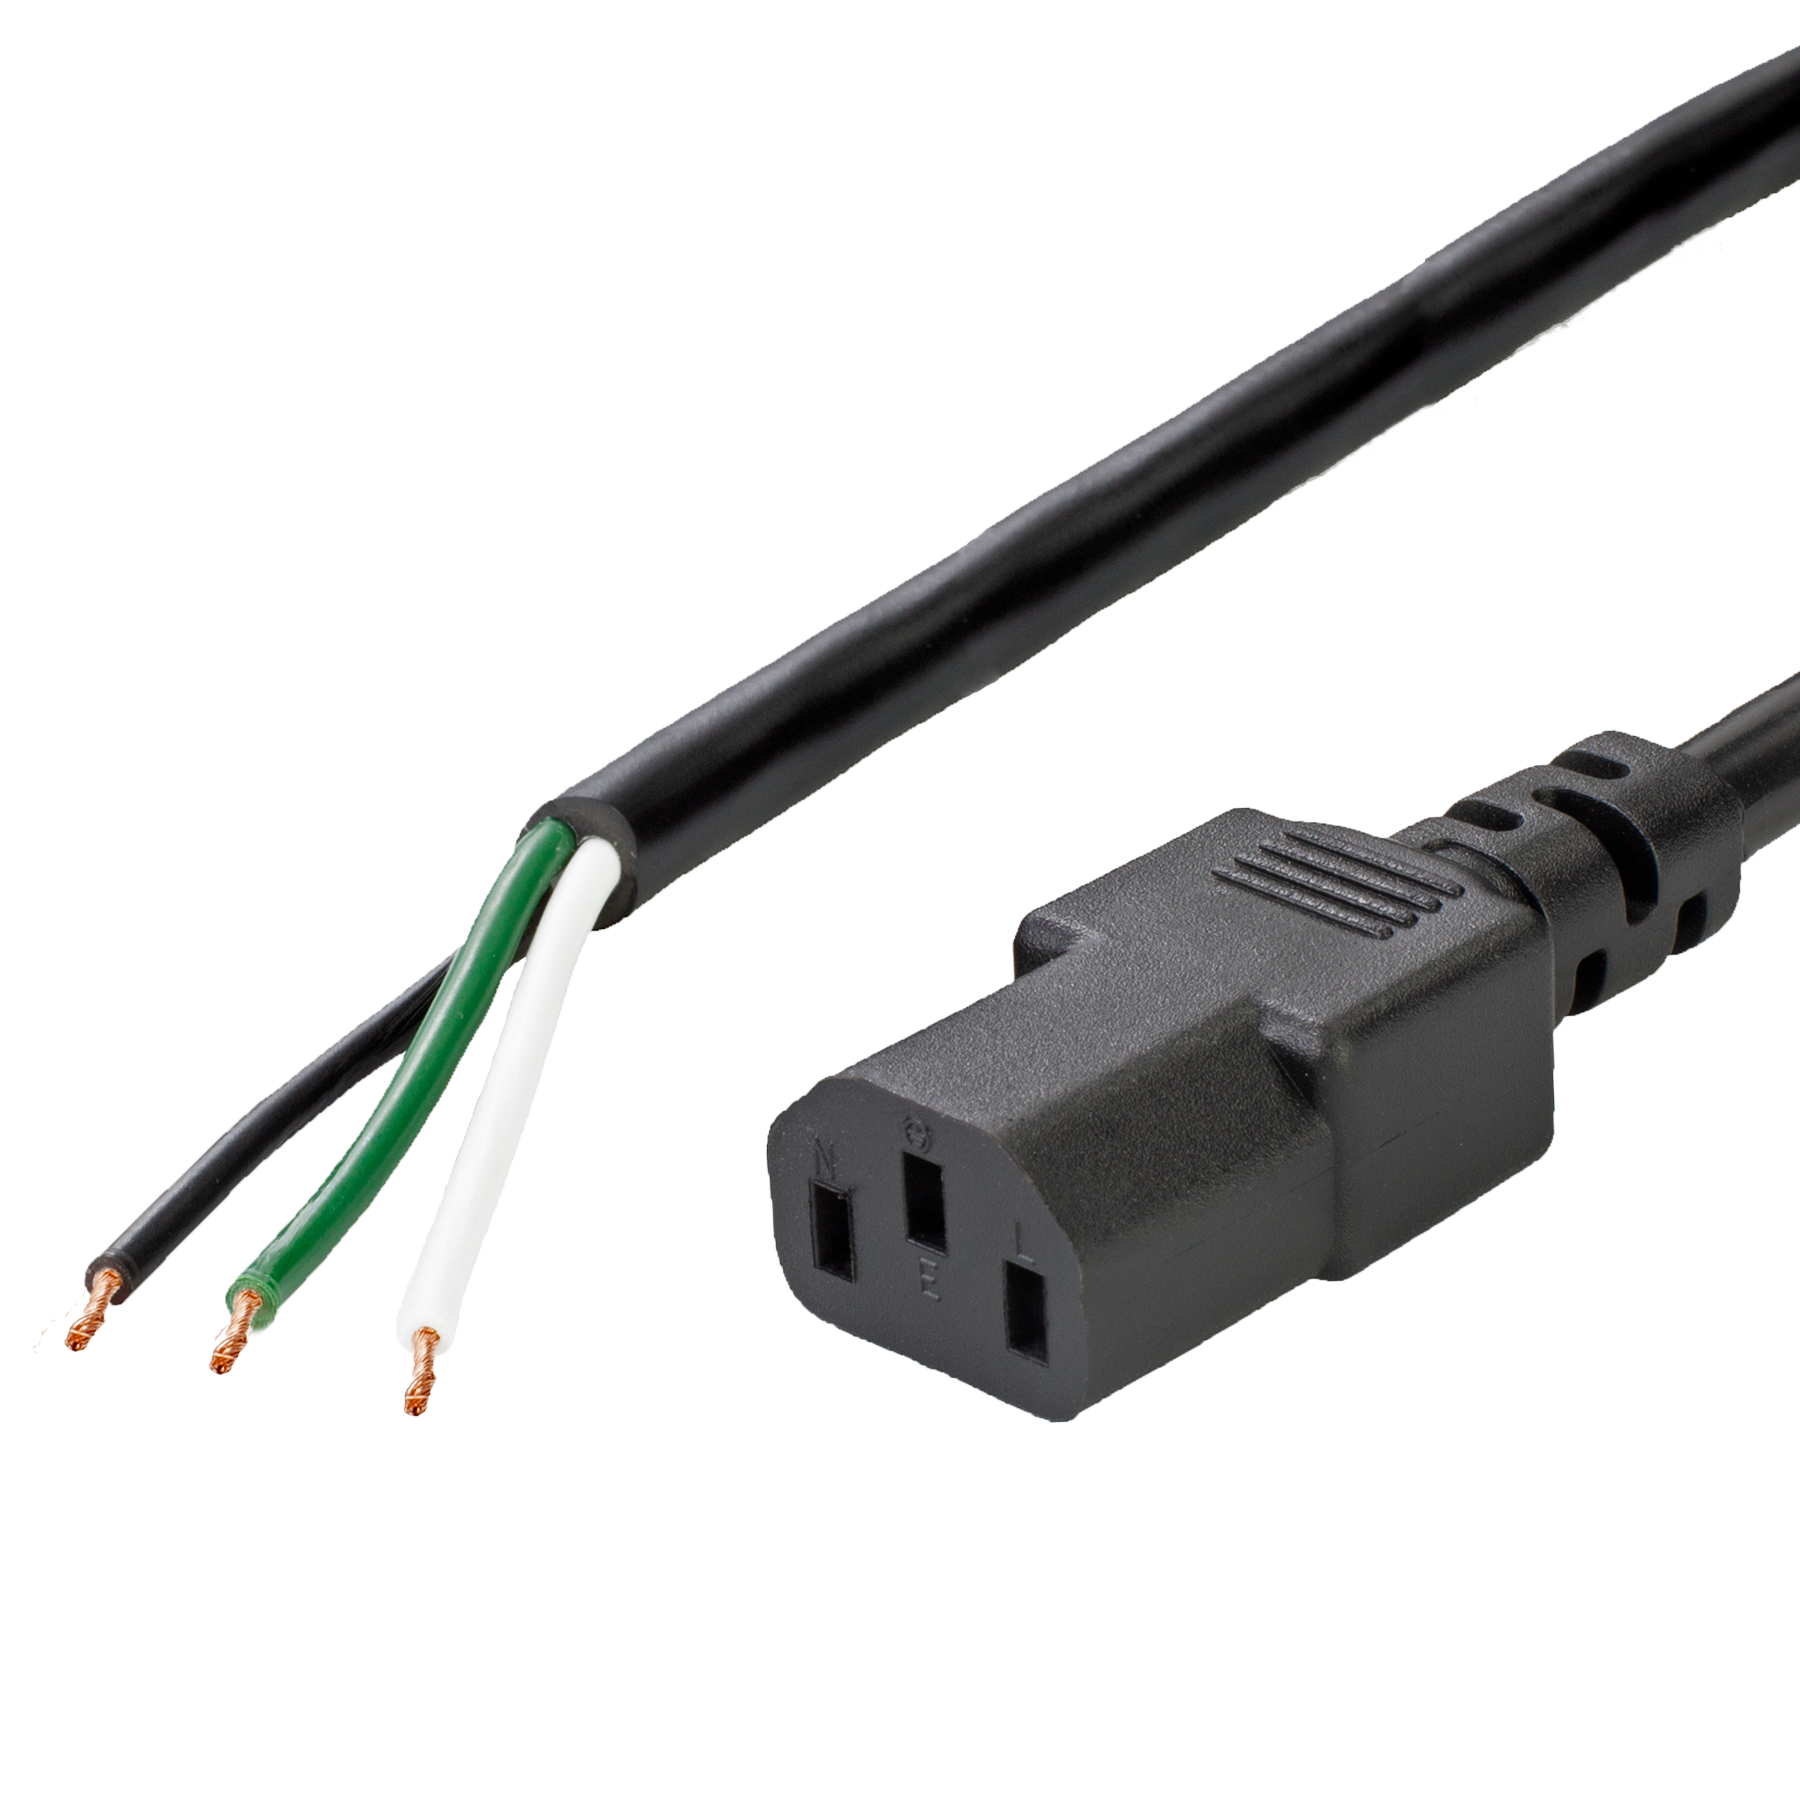 10FT Open to C13, 13A 16/3 SJT, Black Power Supply Cord